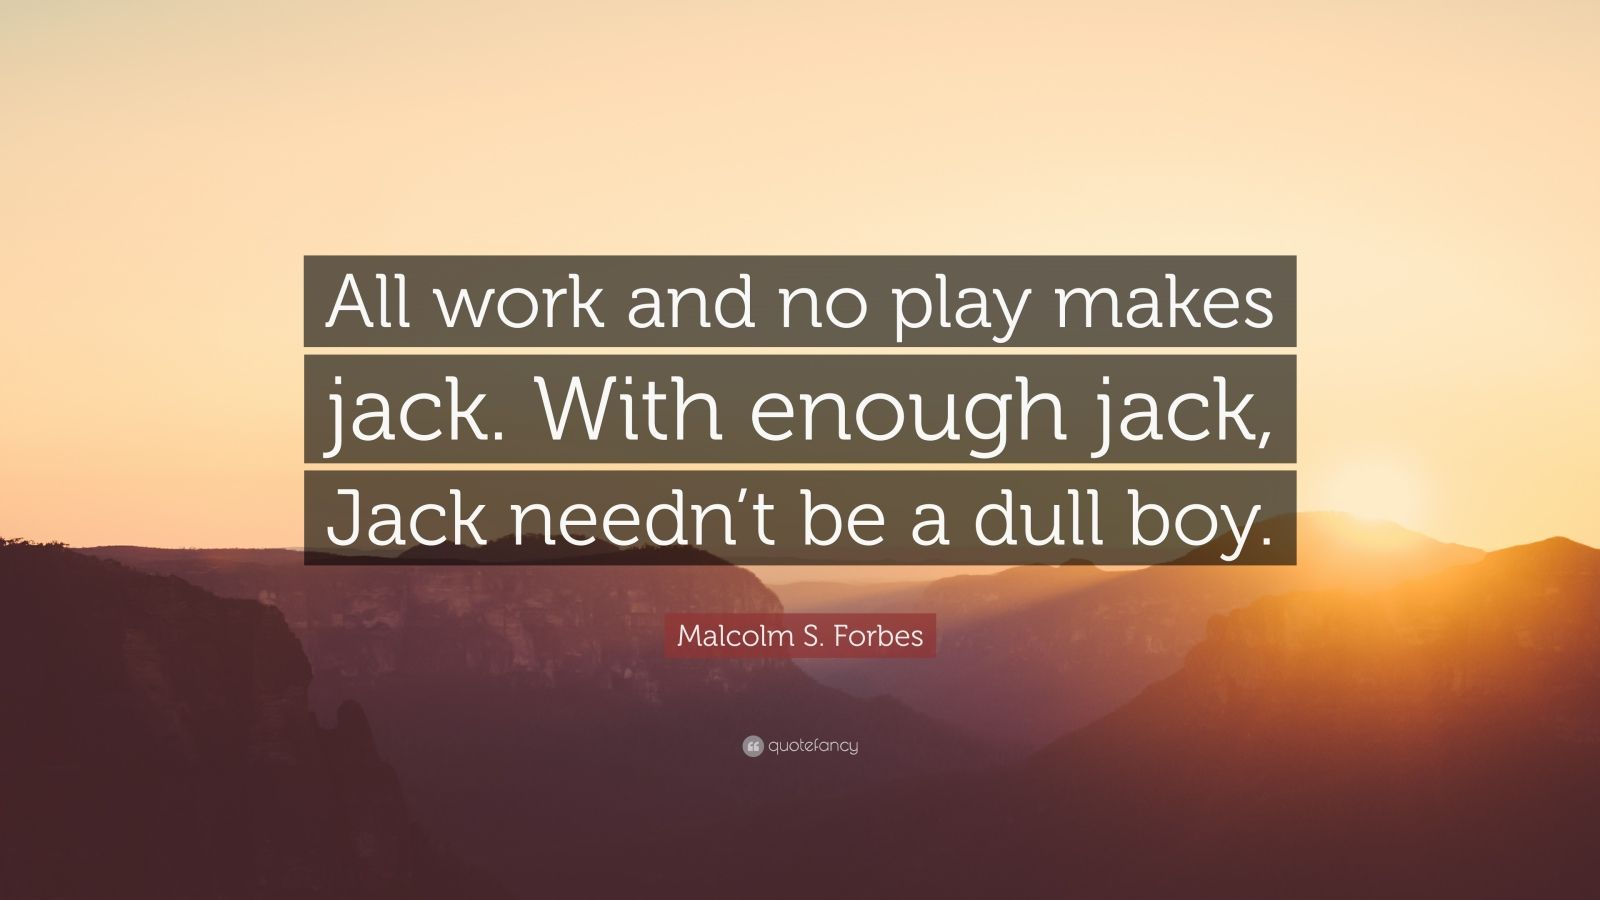 """Malcolm S. Forbes Quote: """"All work and no play makes jack. With enough jack, Jack needn't be a dull boy."""""""